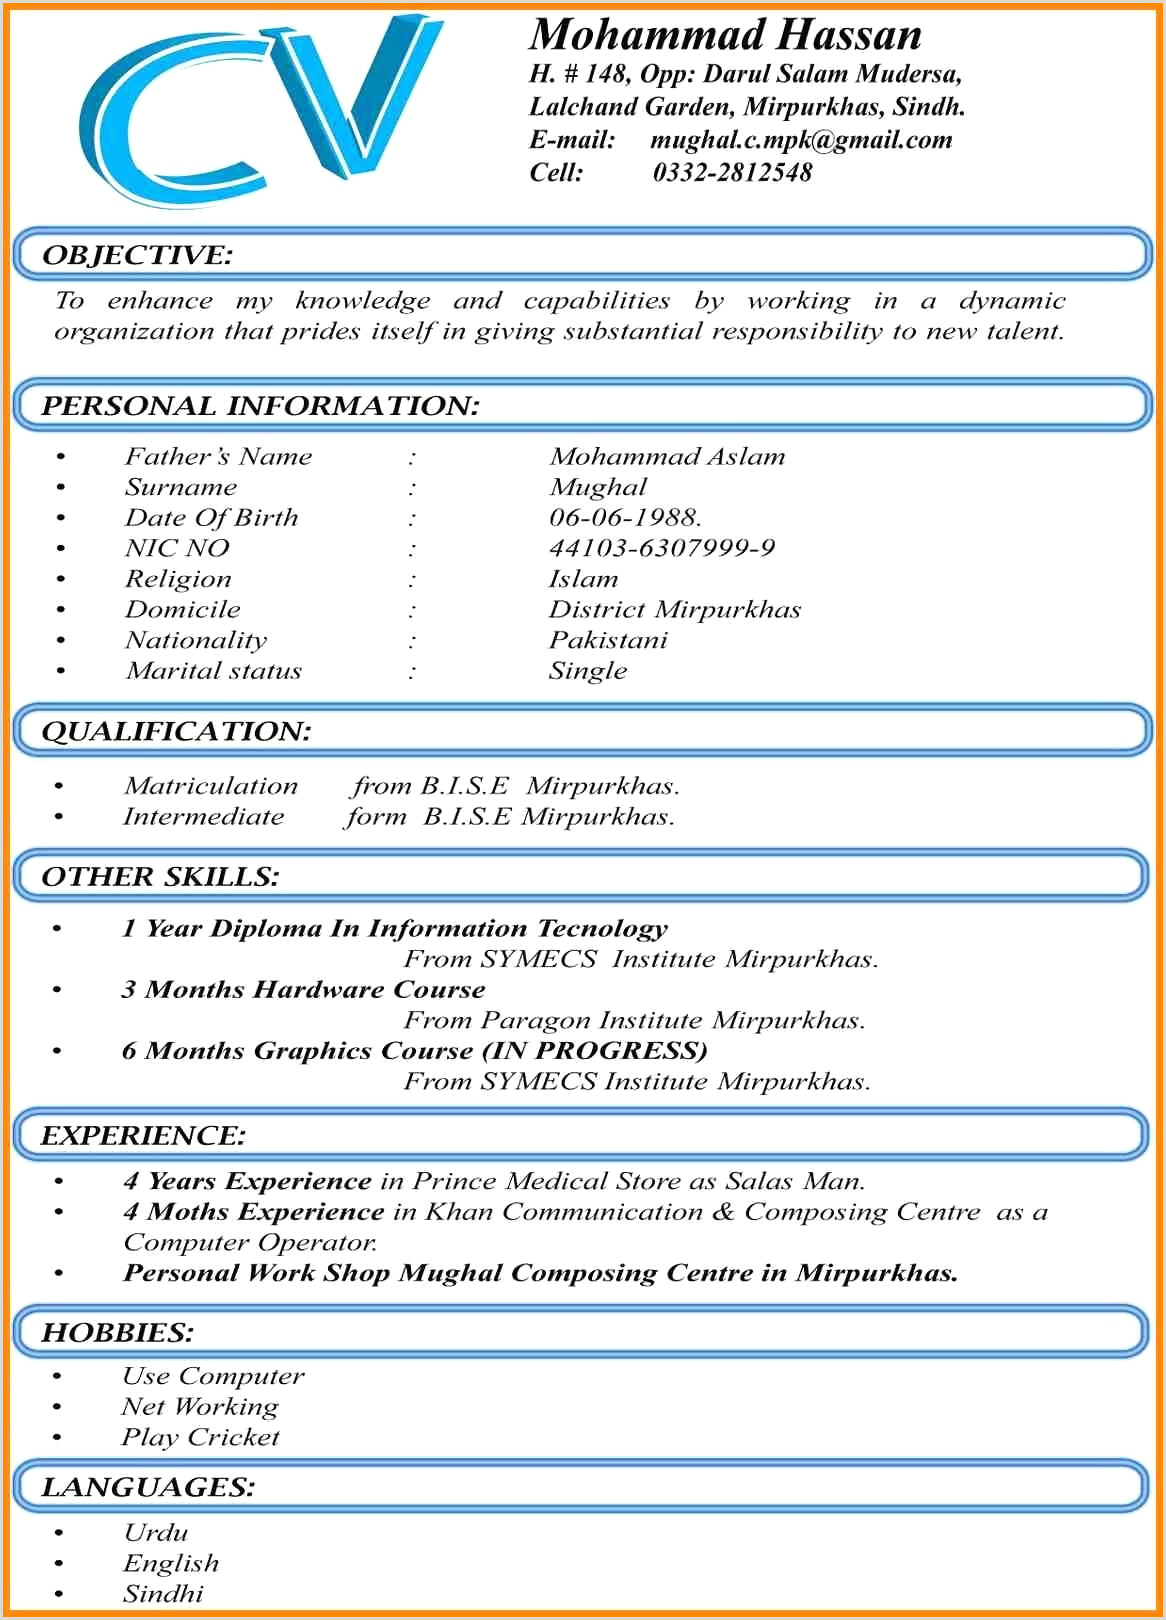 Fresher Resume format Mechanical Engineer Awesome Resume format for Freshers Mechanical Engineers Free